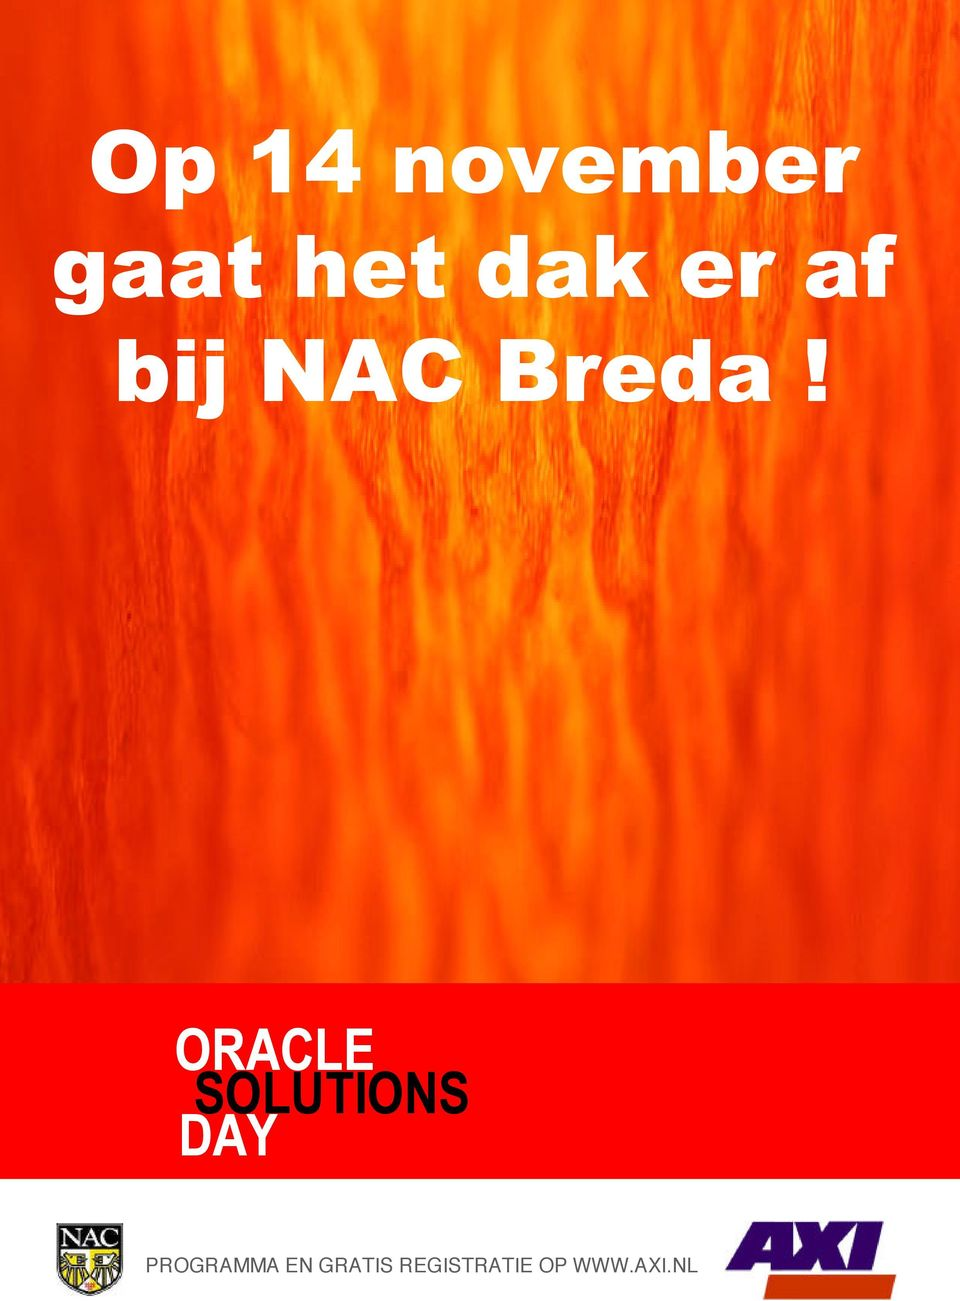 ORACLE ORACLE SOLUTIONS DAY SOLUTIONS DAY PROGRAMMA EN